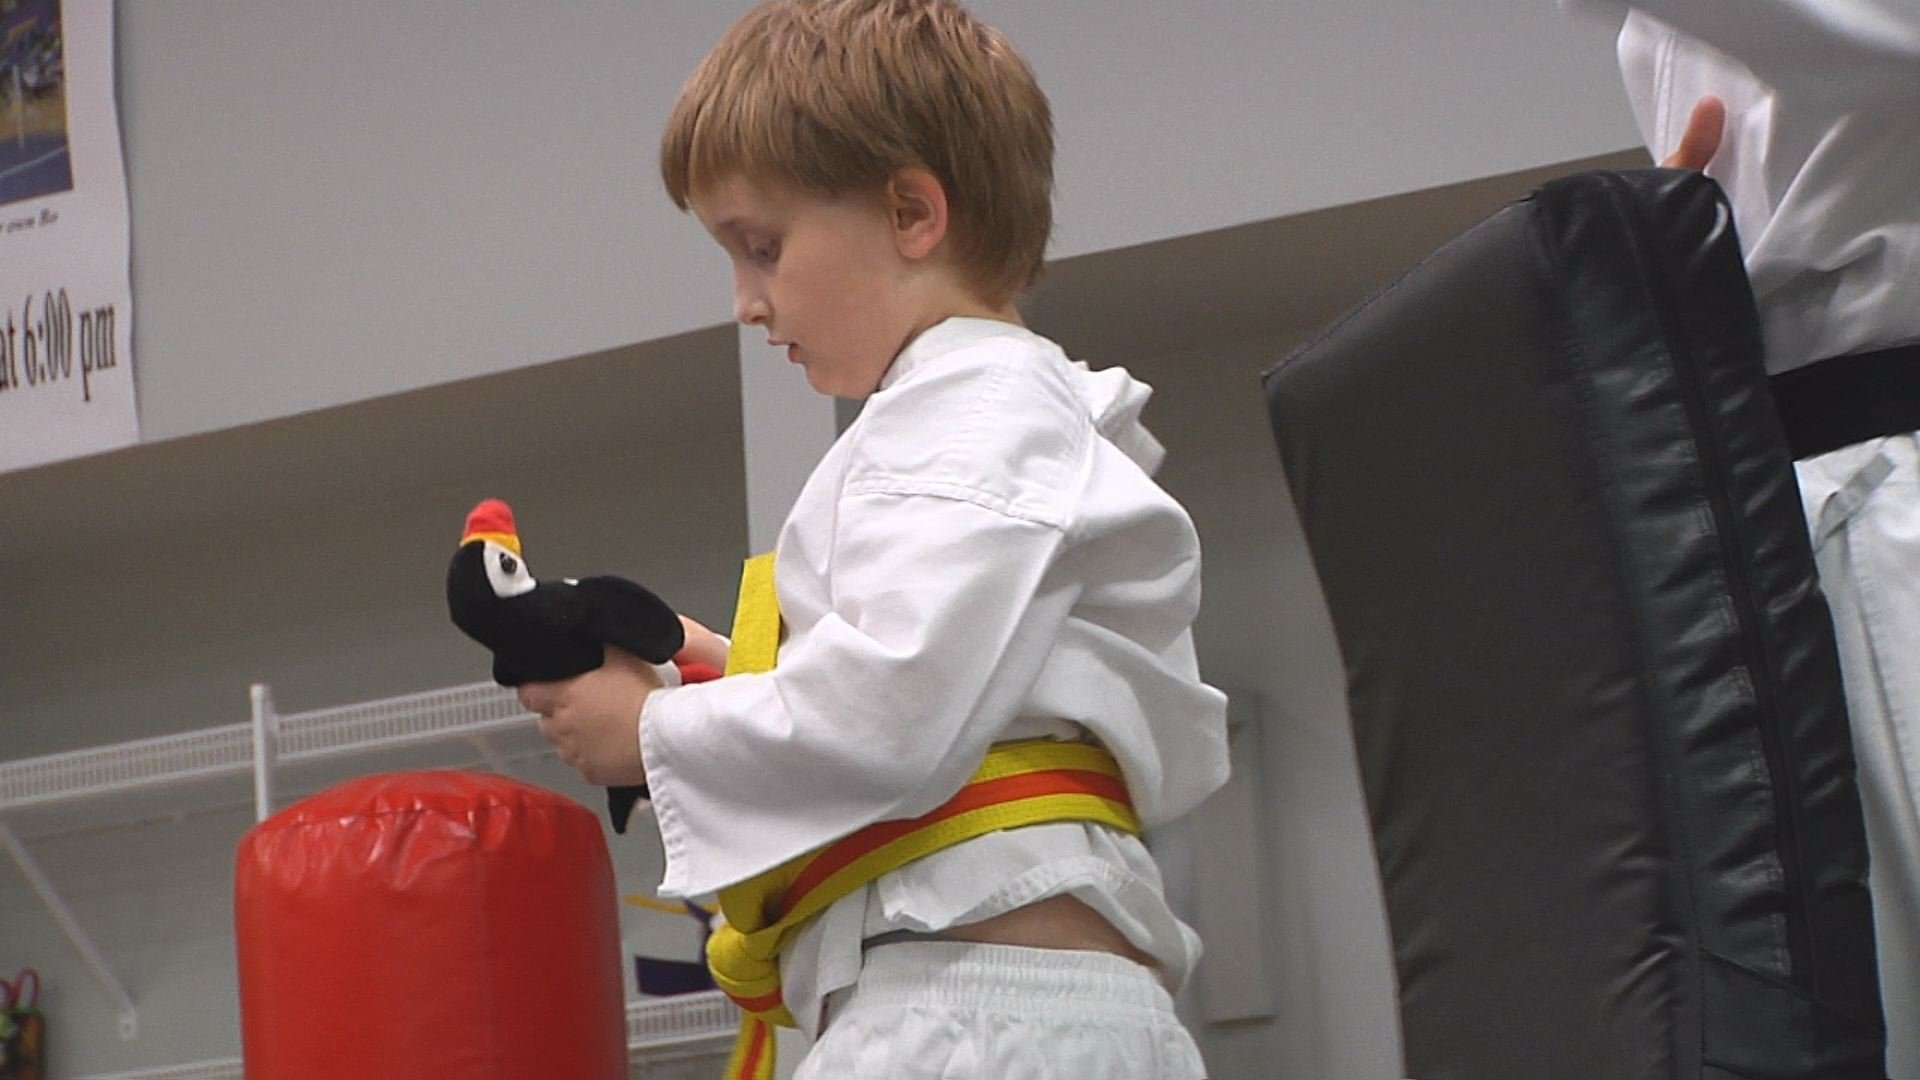 One student brings his stuffed penguin to class.